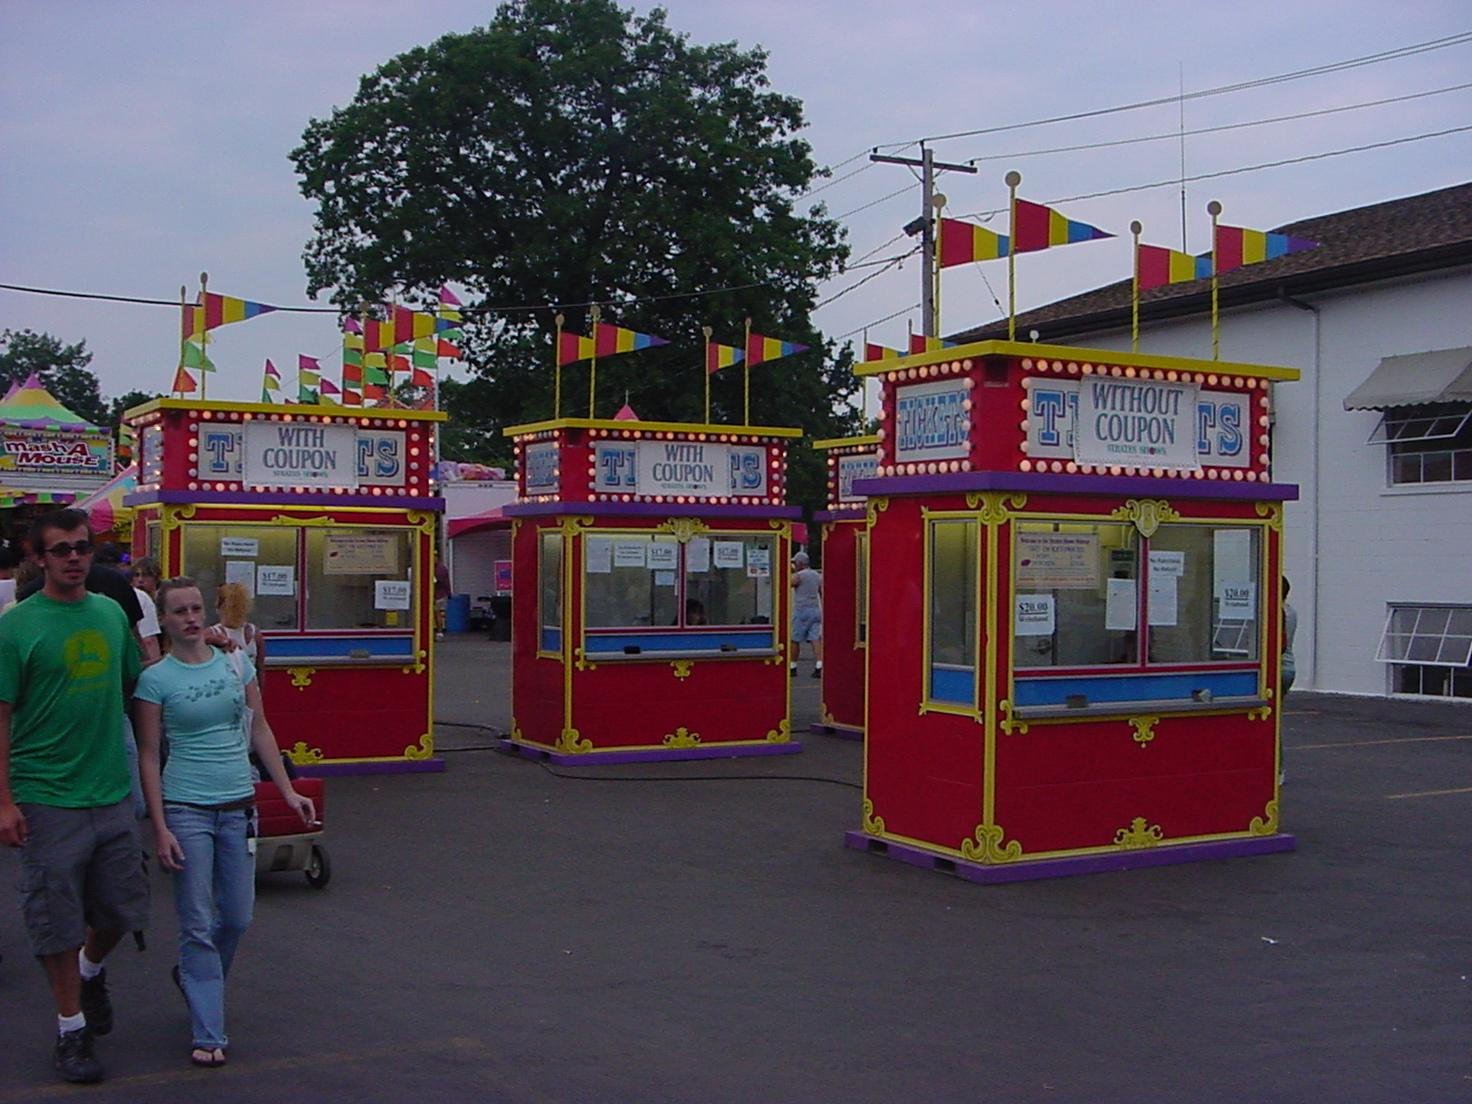 FileCarnival Ticket Boothjpg Wikimedia Commons